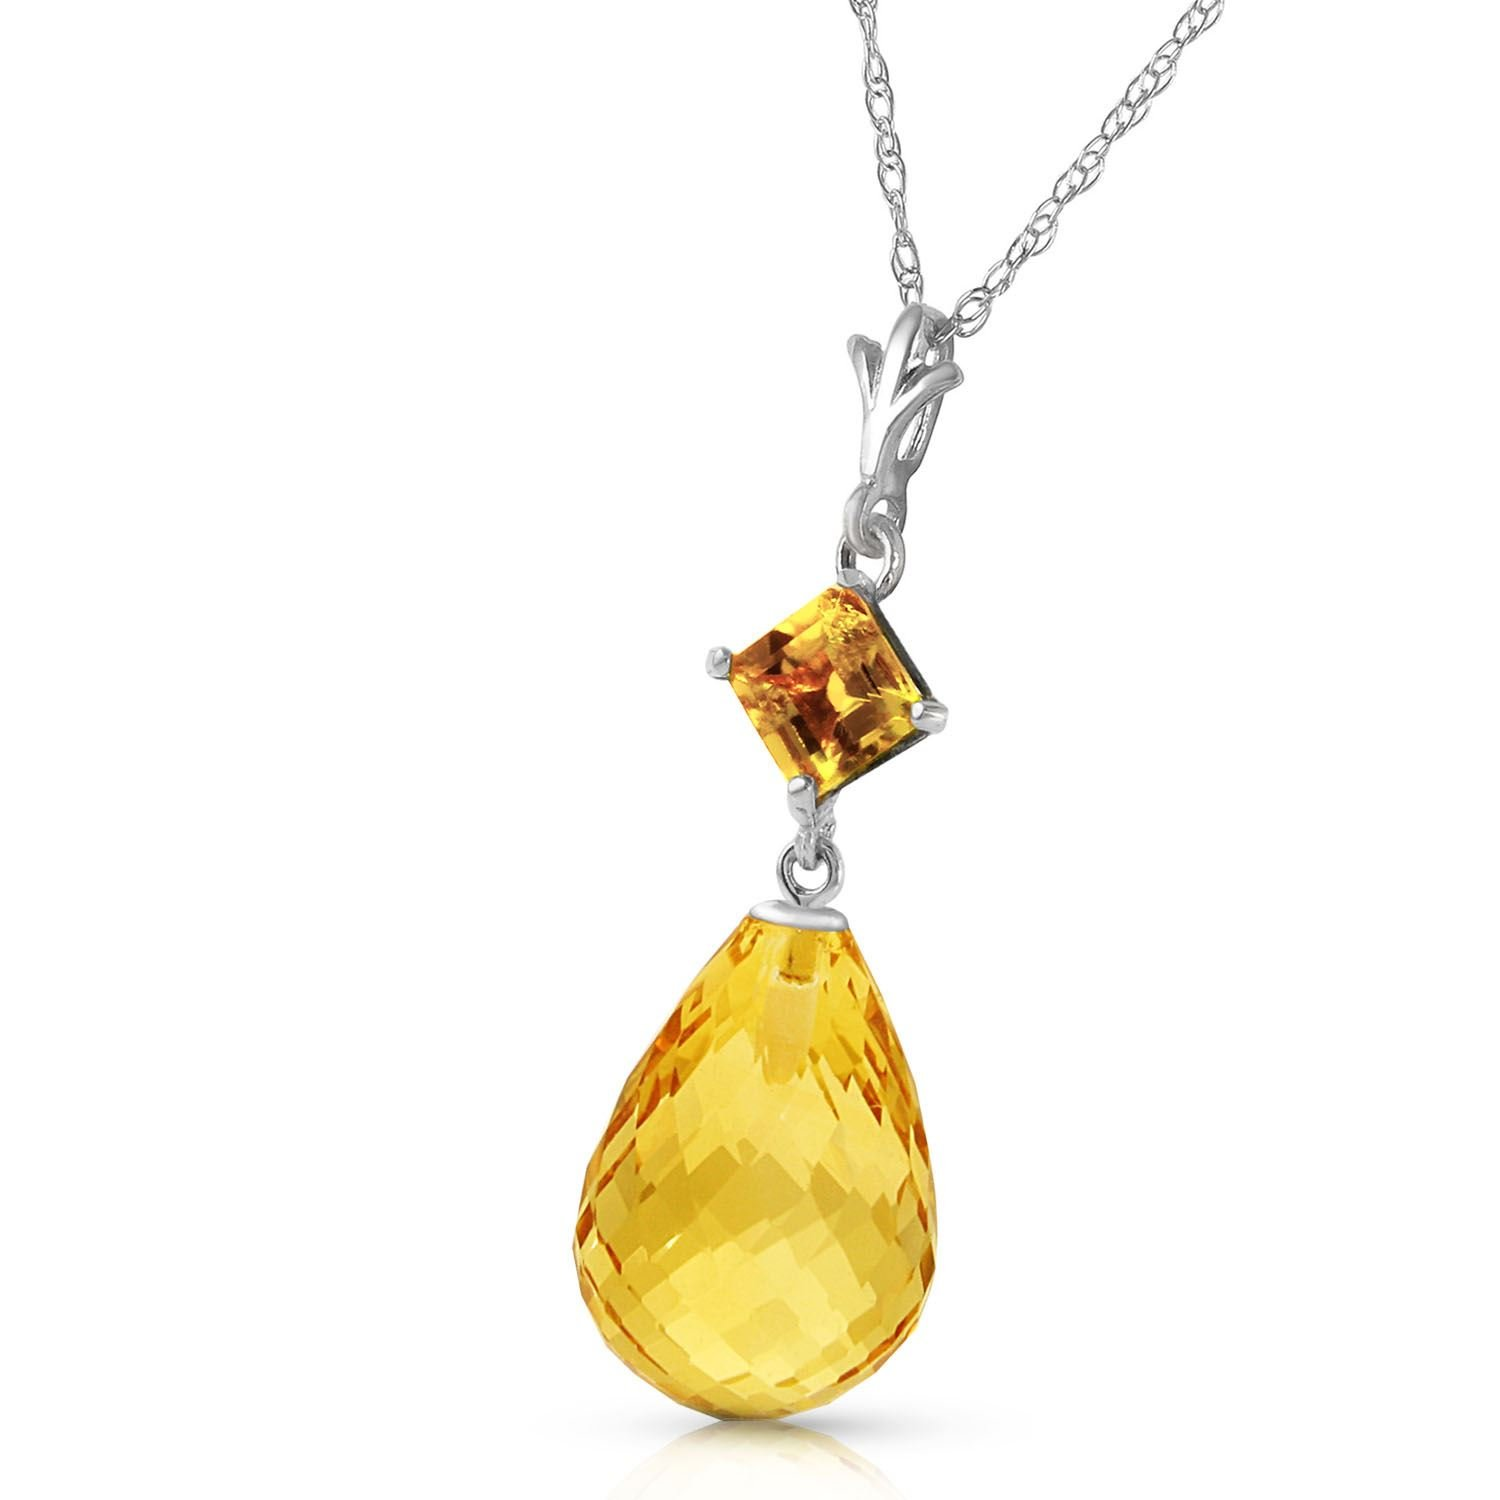 ALARRI 5.5 CTW 14K Solid White Gold Calm After Storm Citrine Necklace with 20 Inch Chain Length